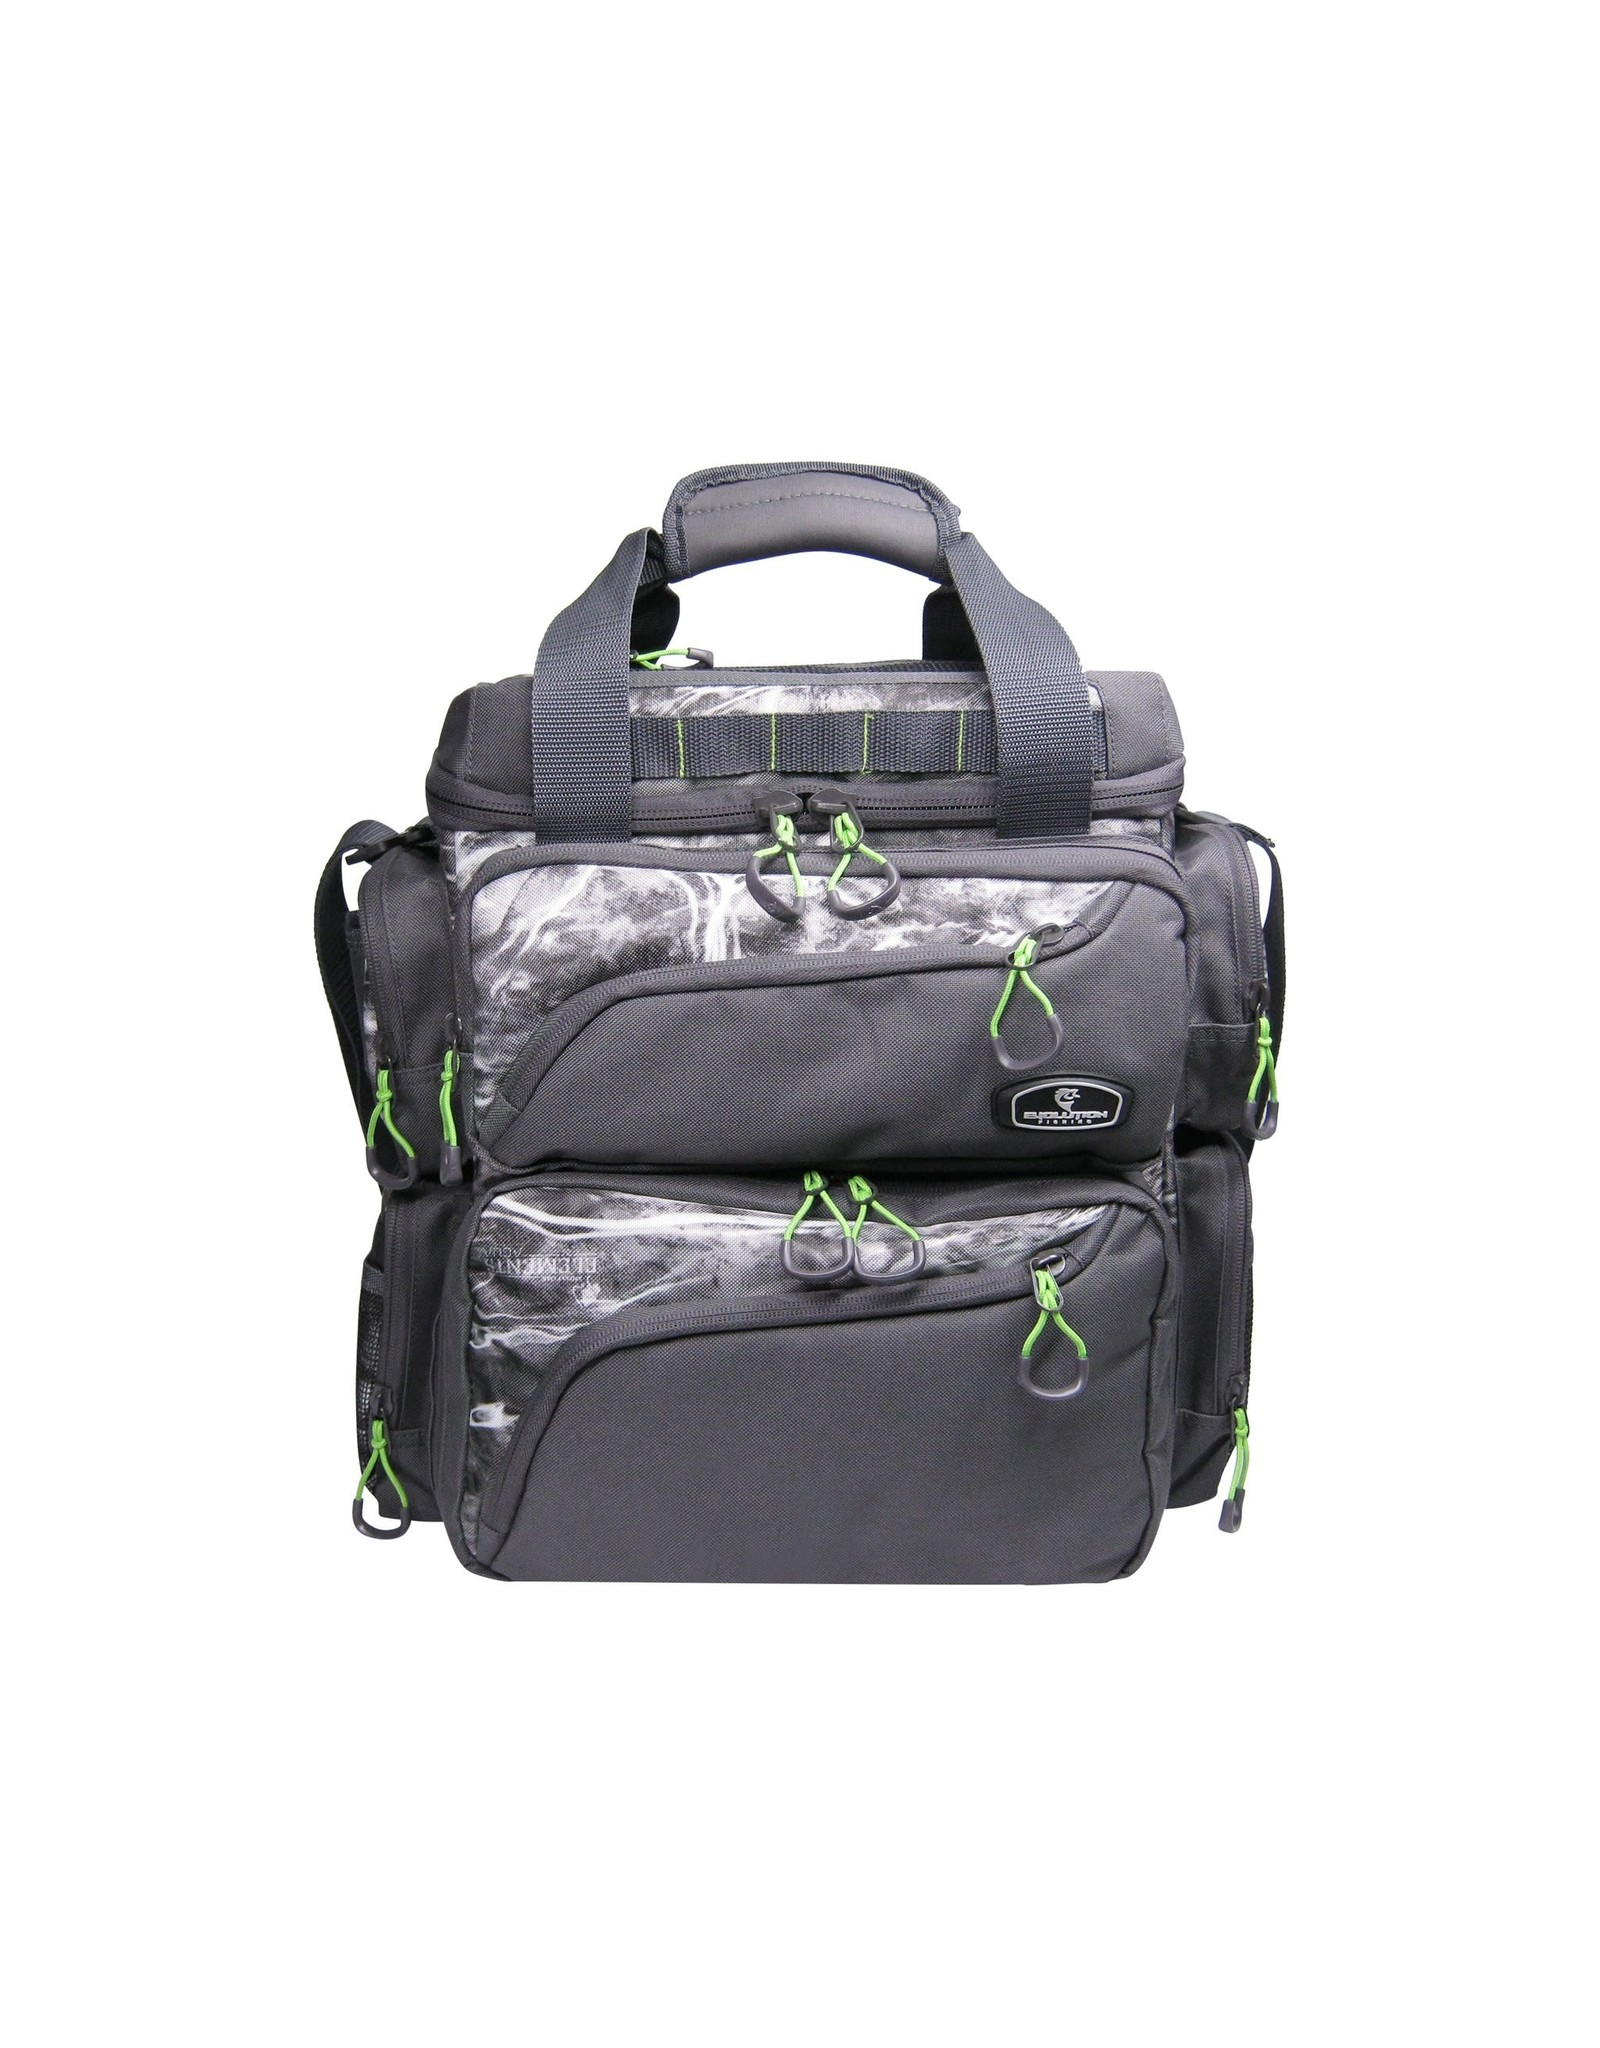 Evolution Outdoor Evolution Outdoor Large Mouth Double Decker Mossy Oak Tackle Bag - 3600